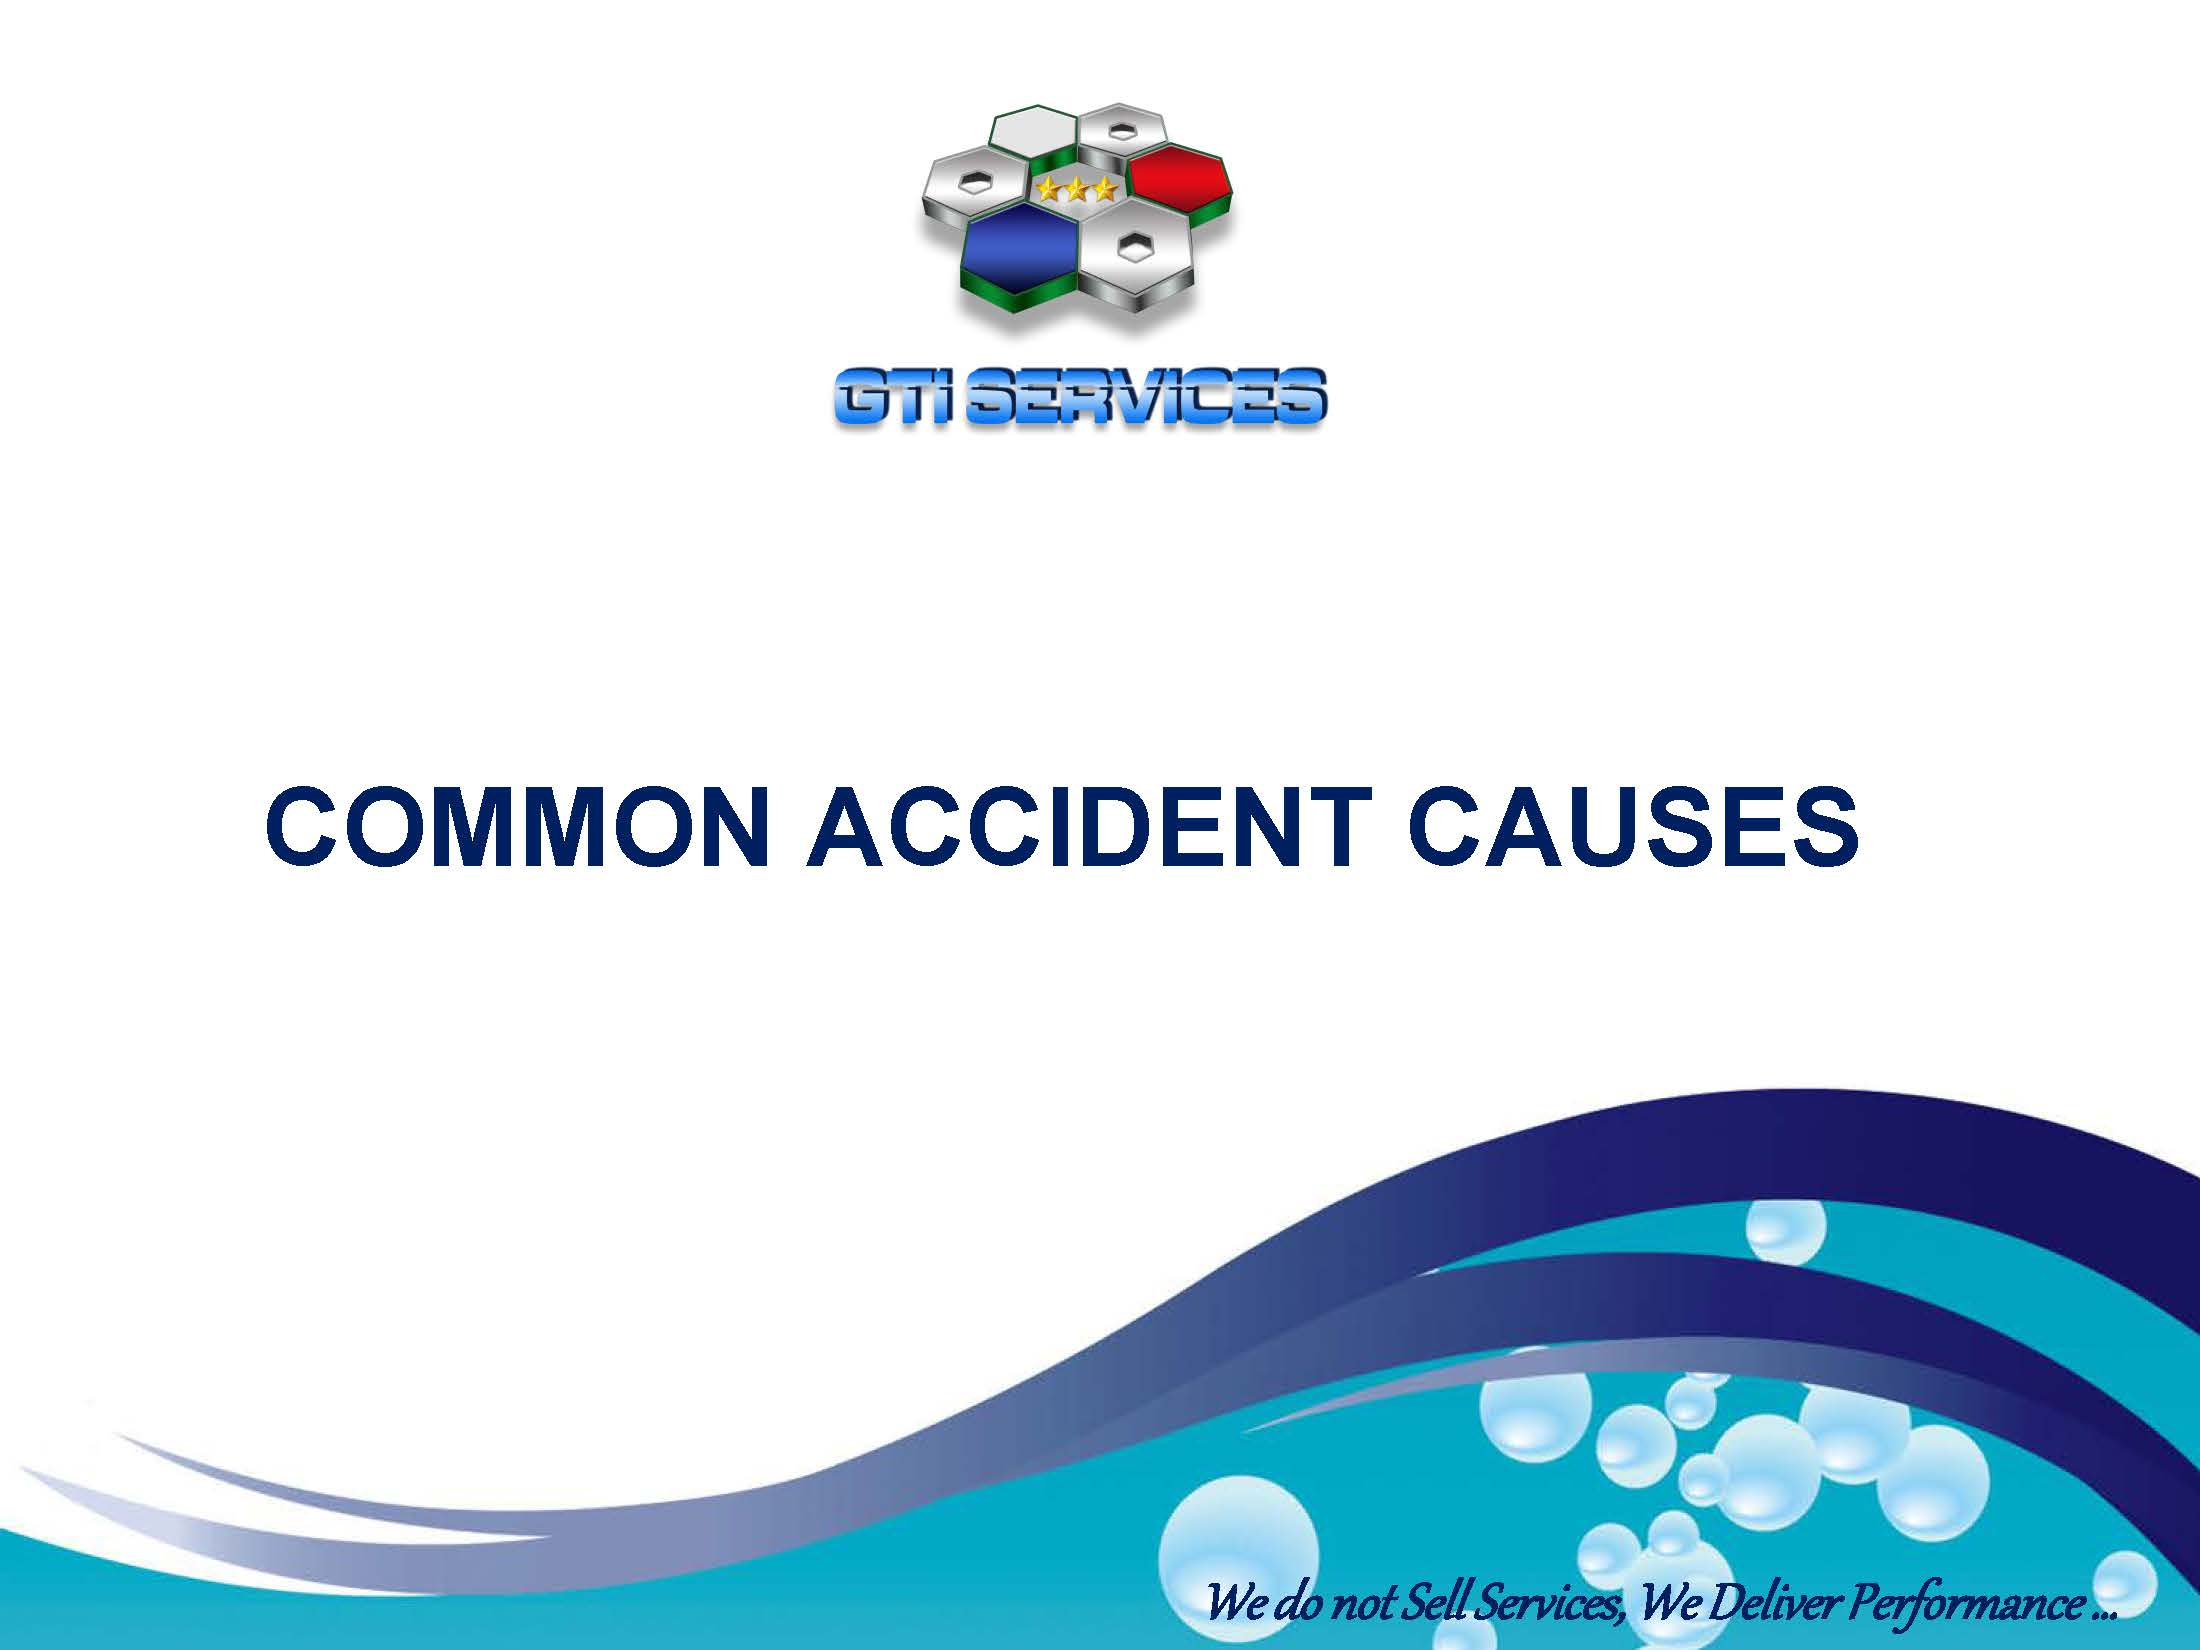 20191115 - Safety Moment - Common Accident Causes_Page_1